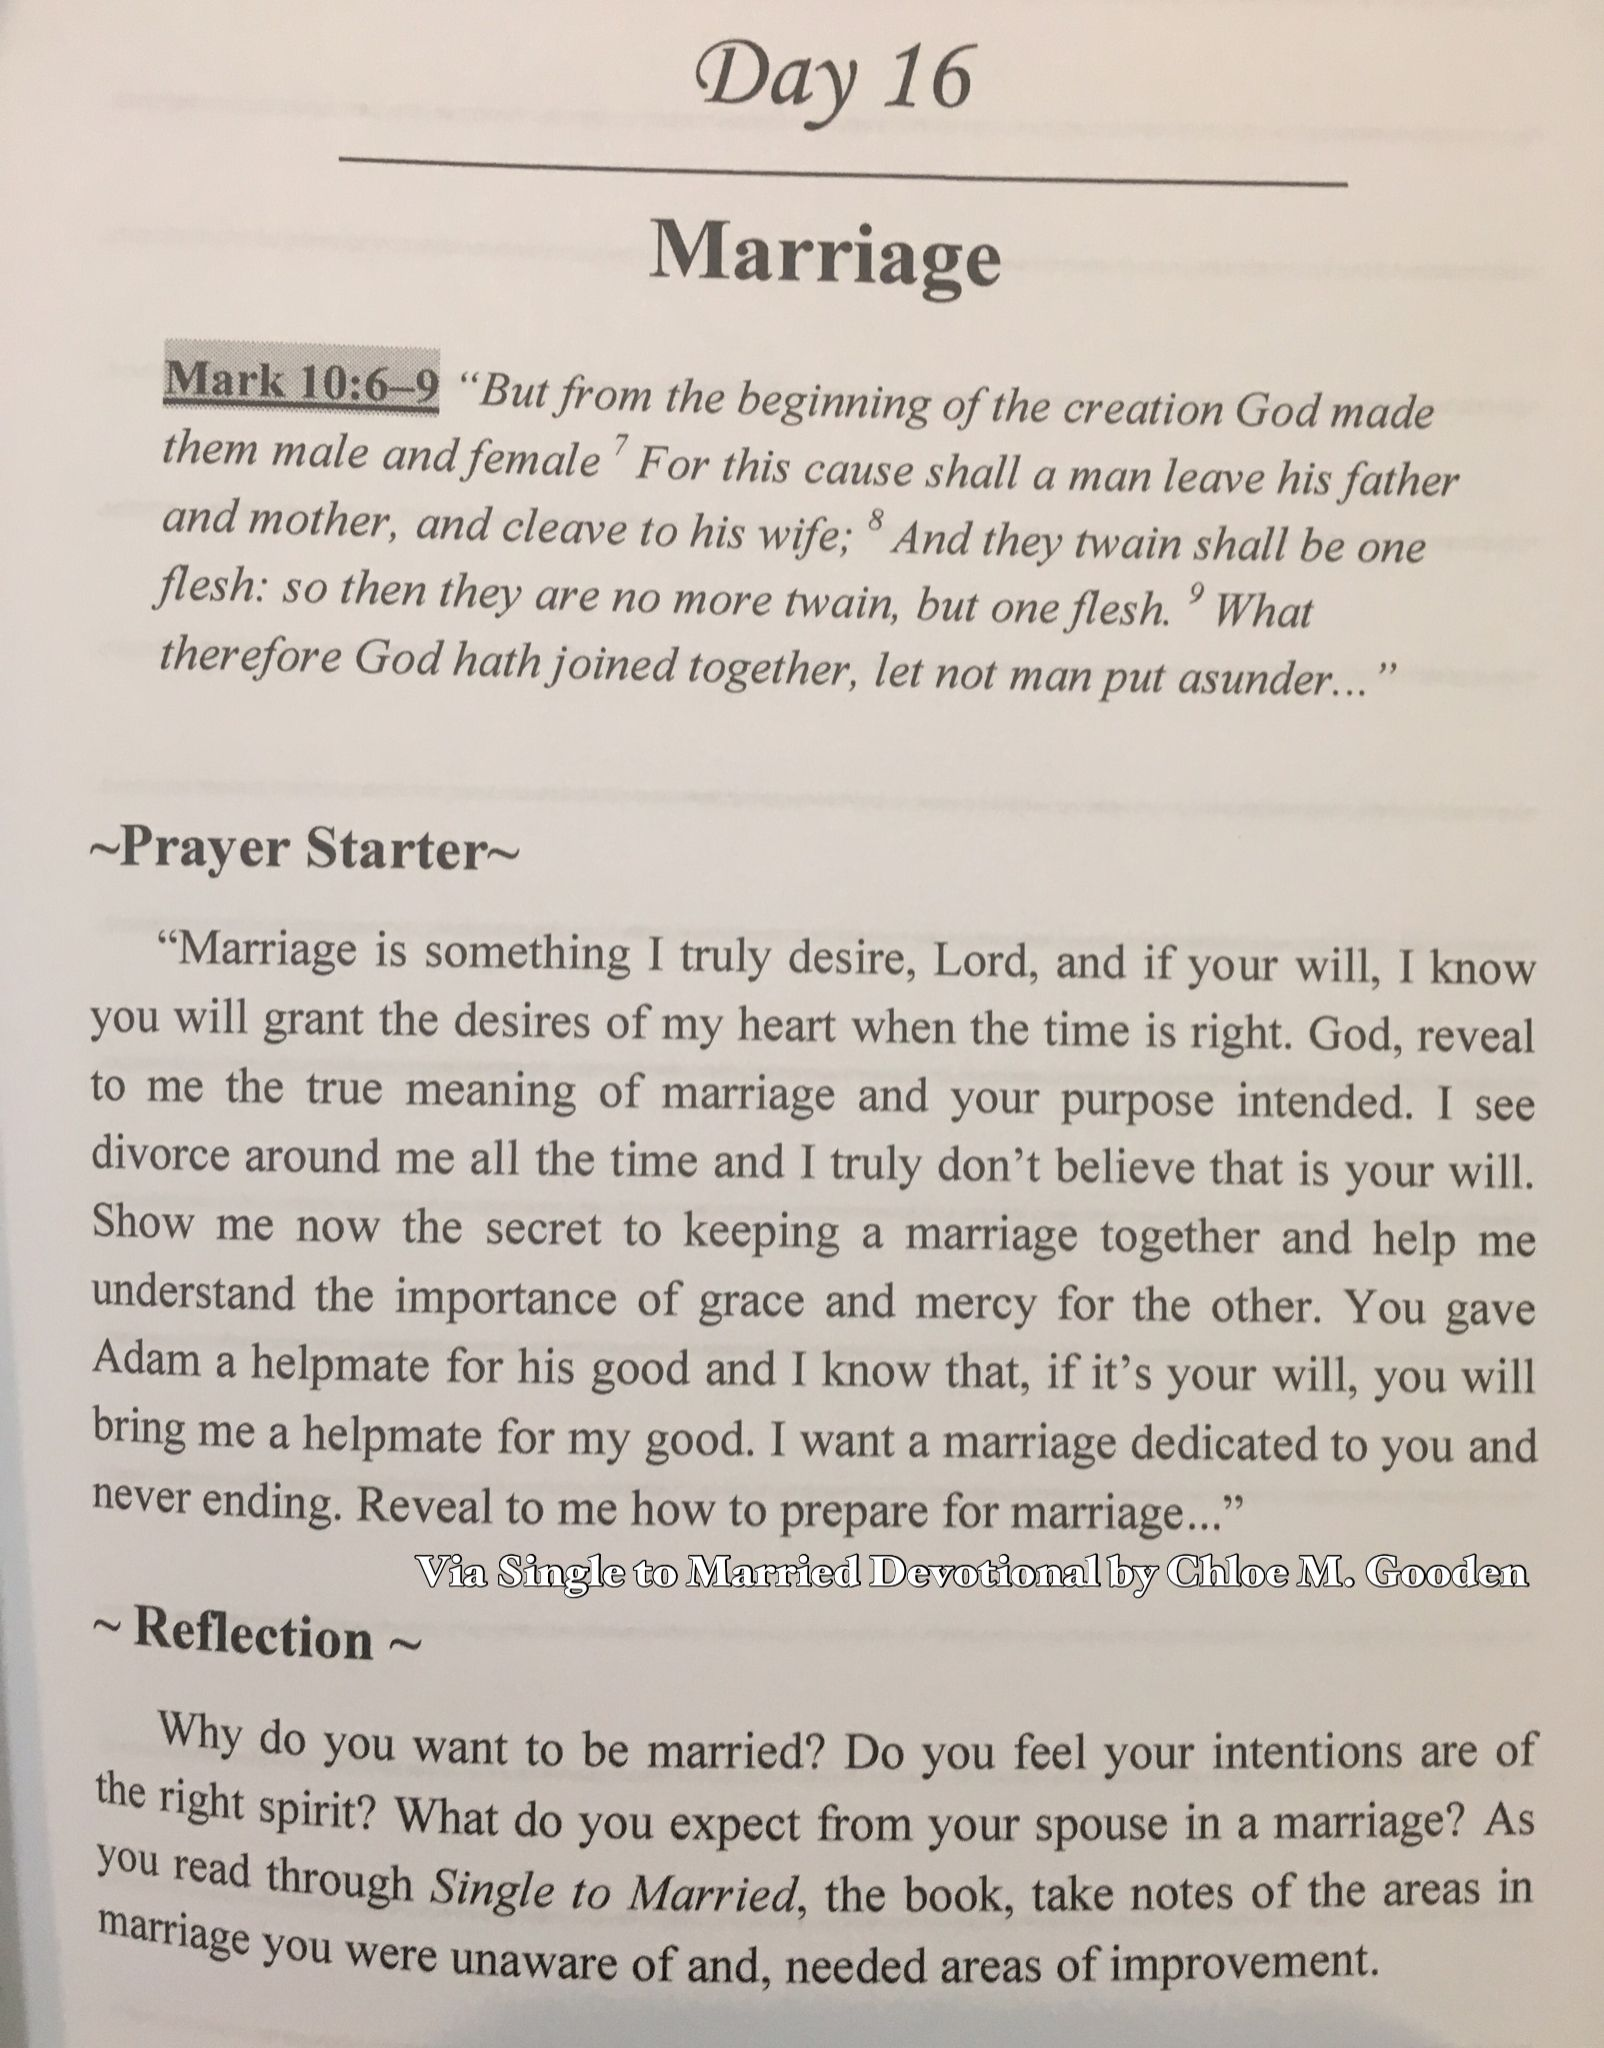 To whom do they pray for marriage